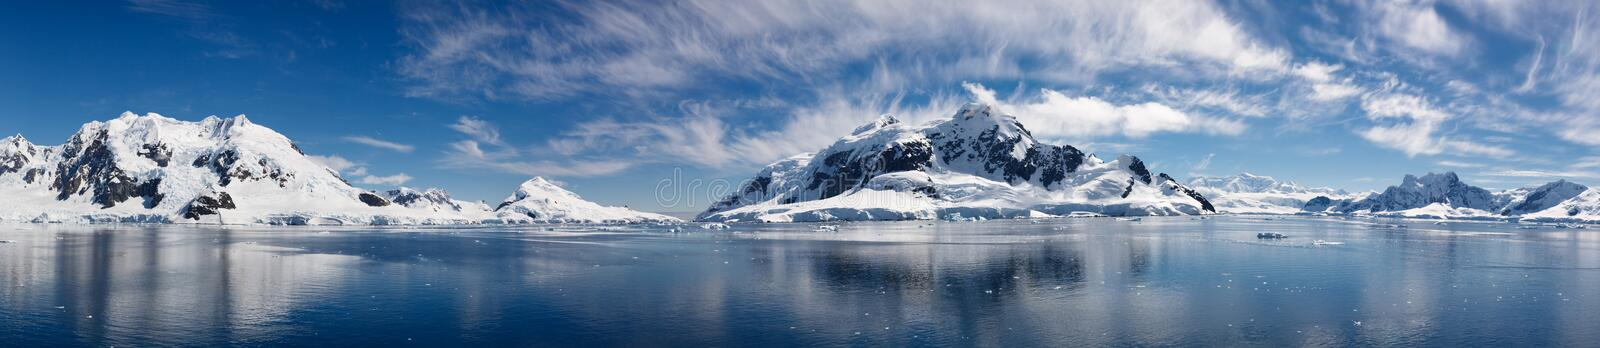 Paradise Bay, Antarctica - Majestic Icy Wonderland royalty free stock photo